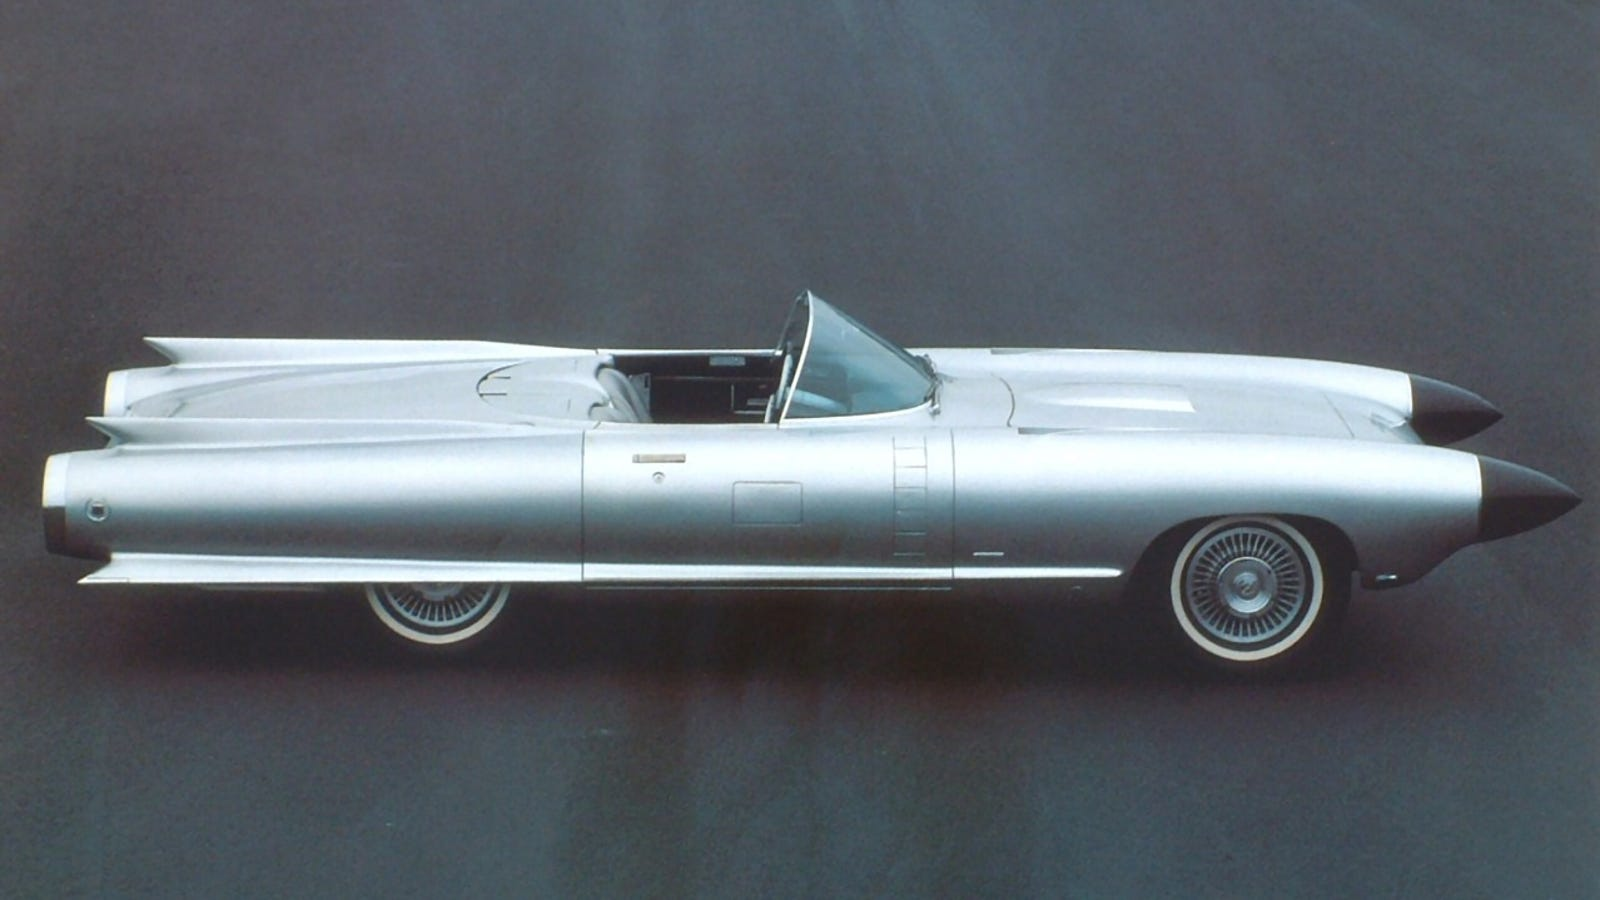 Collision Warning Systems Originated In The 1959 Cadillac